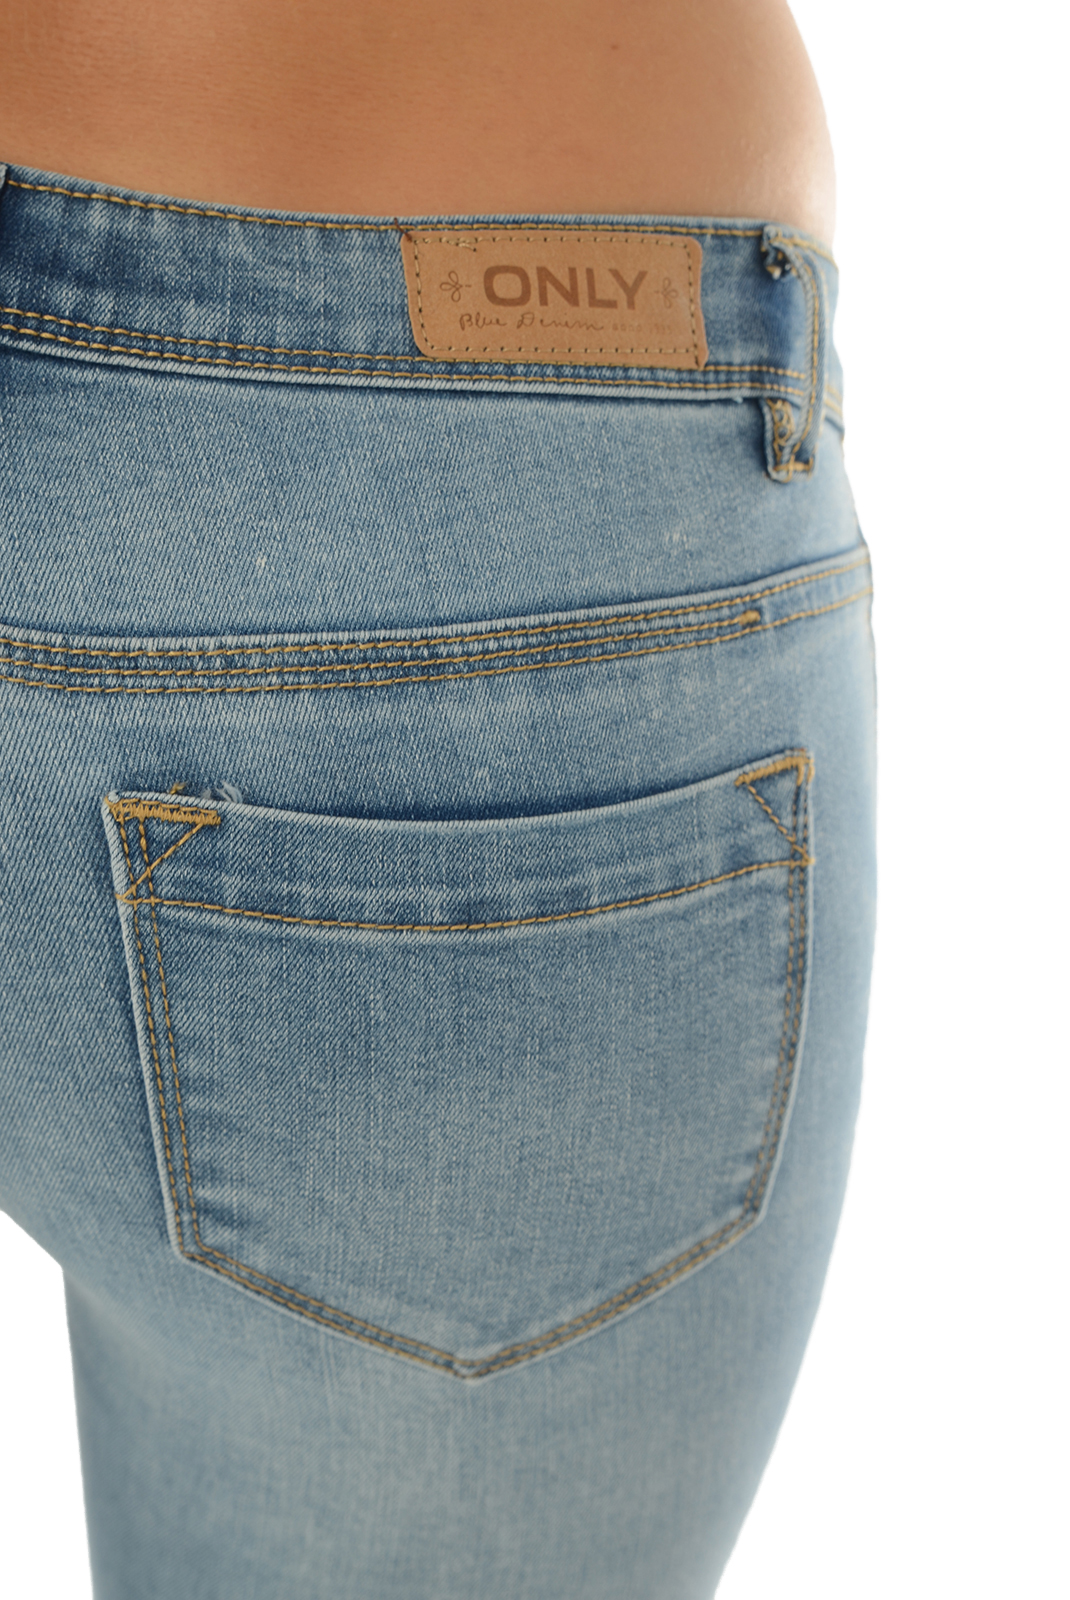 Jeans   Only CORAL SL SK JEANS BJ11049 LIGHT BLUE DENIM